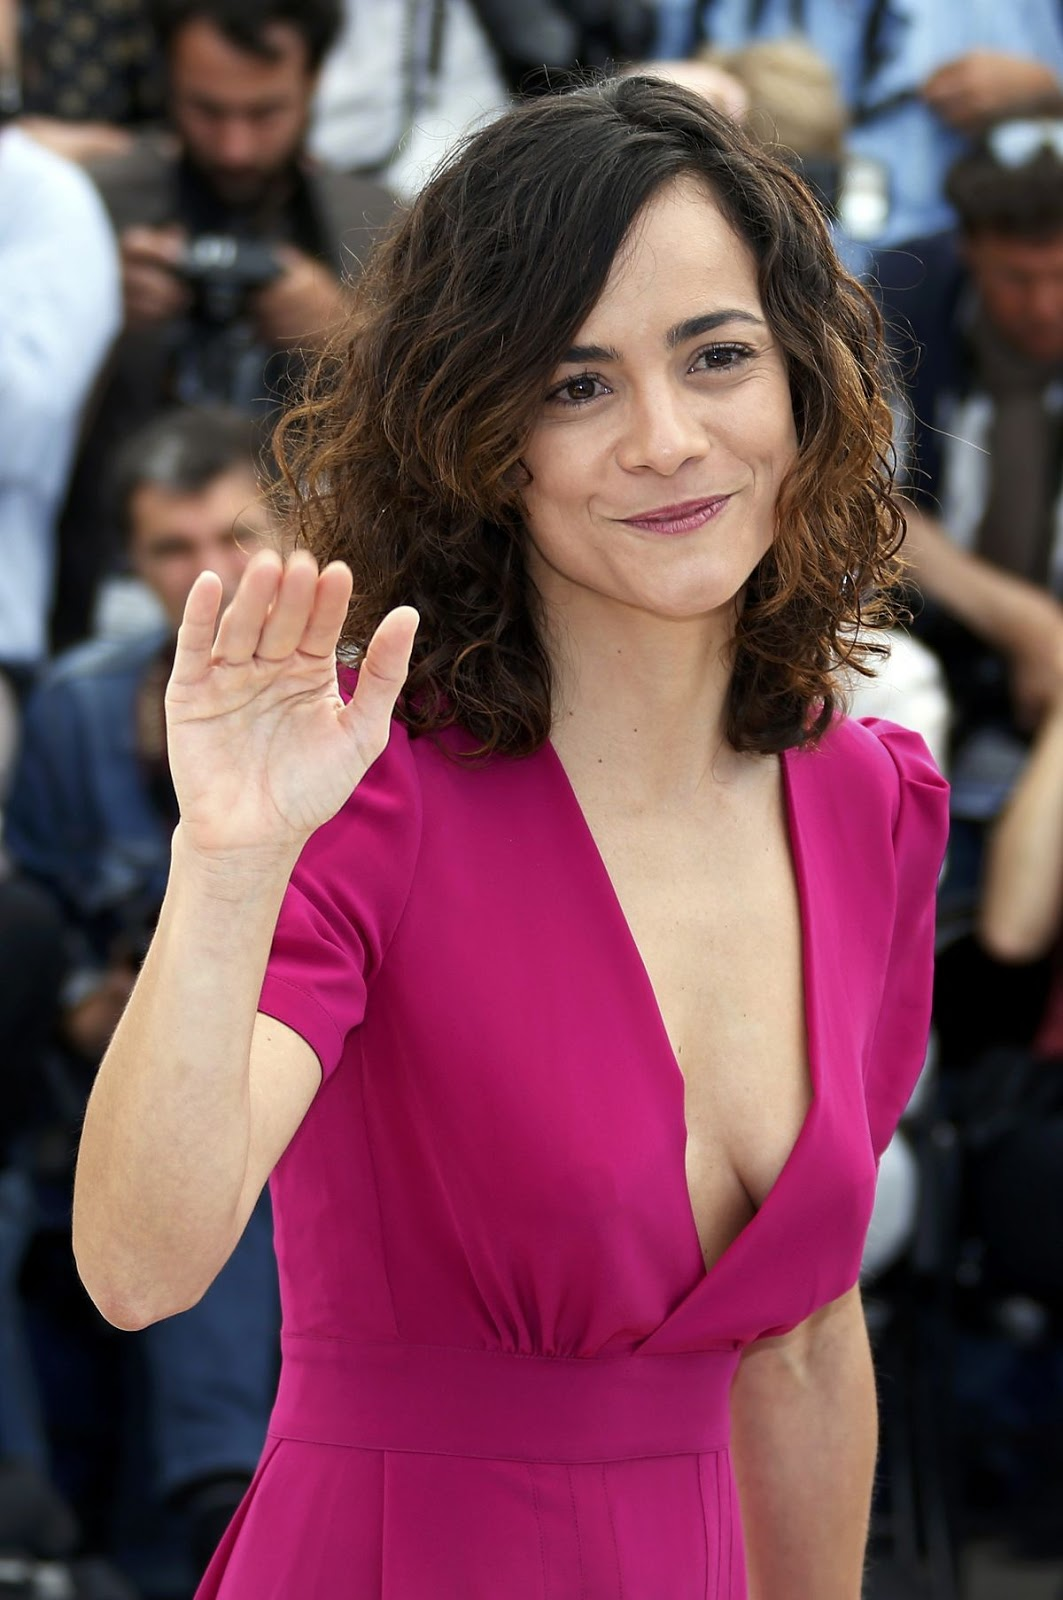 Alice Braga naked (52 pictures) Topless, Instagram, in bikini